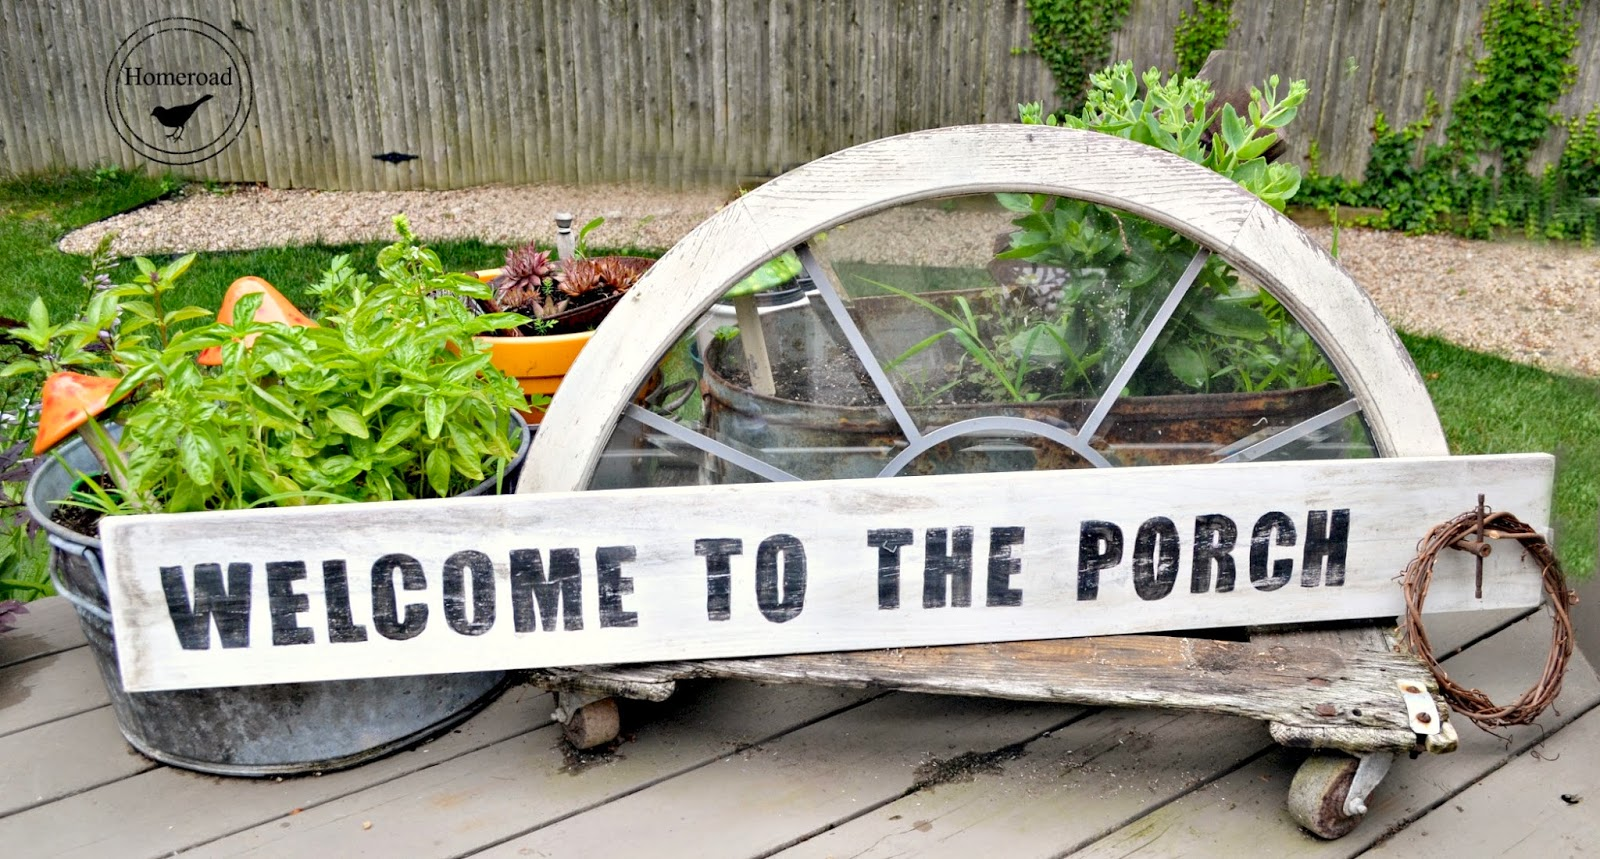 welcome-to-the-porch-sign www.homeroad.net